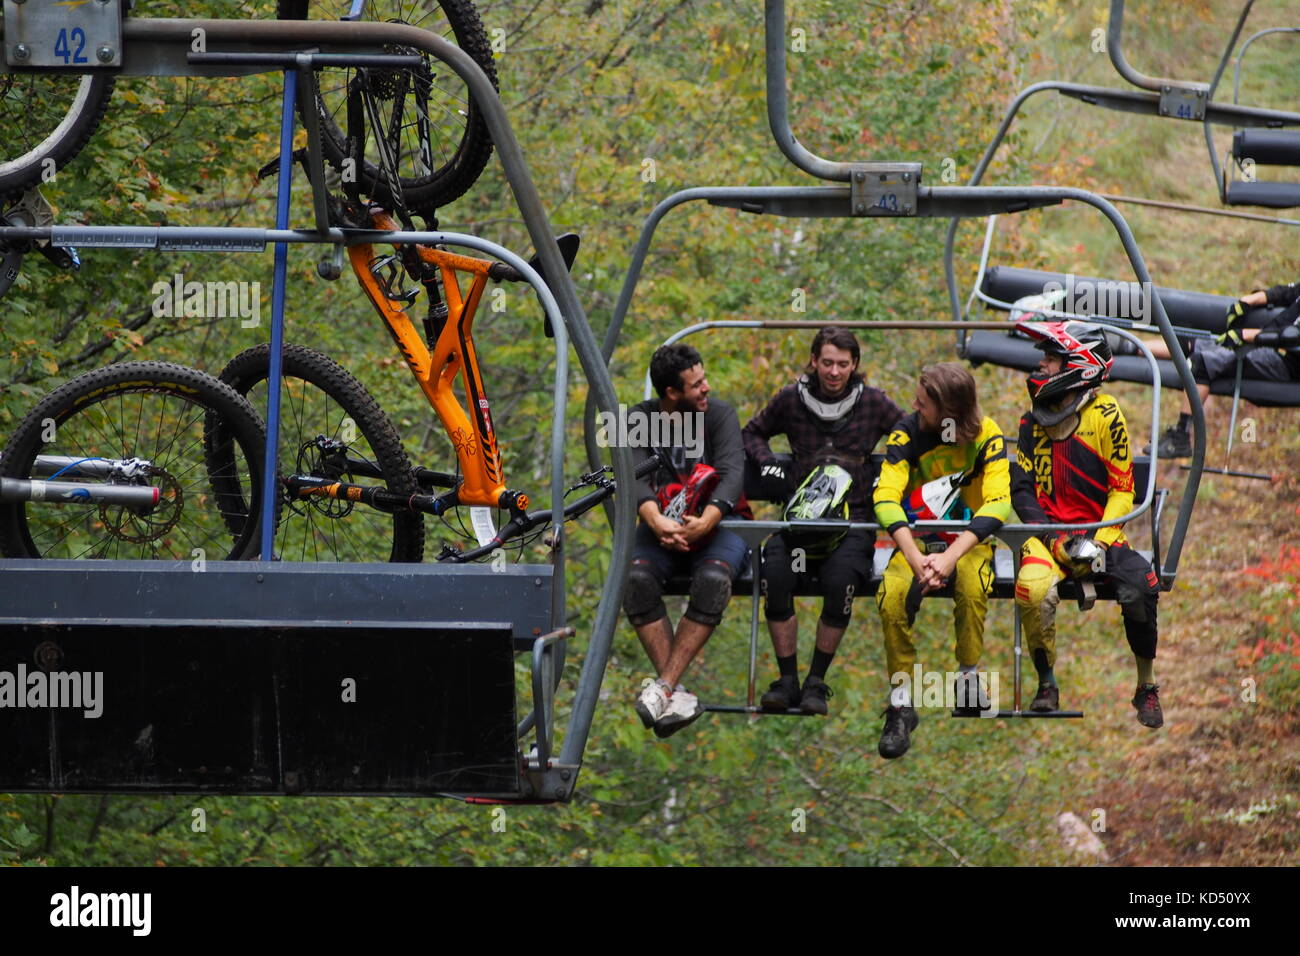 Skyline ski lift carrying downhill mountain bikers up to the trails at Camp Fortune, Gatineau Park, Quebec, Canada. - Stock Image